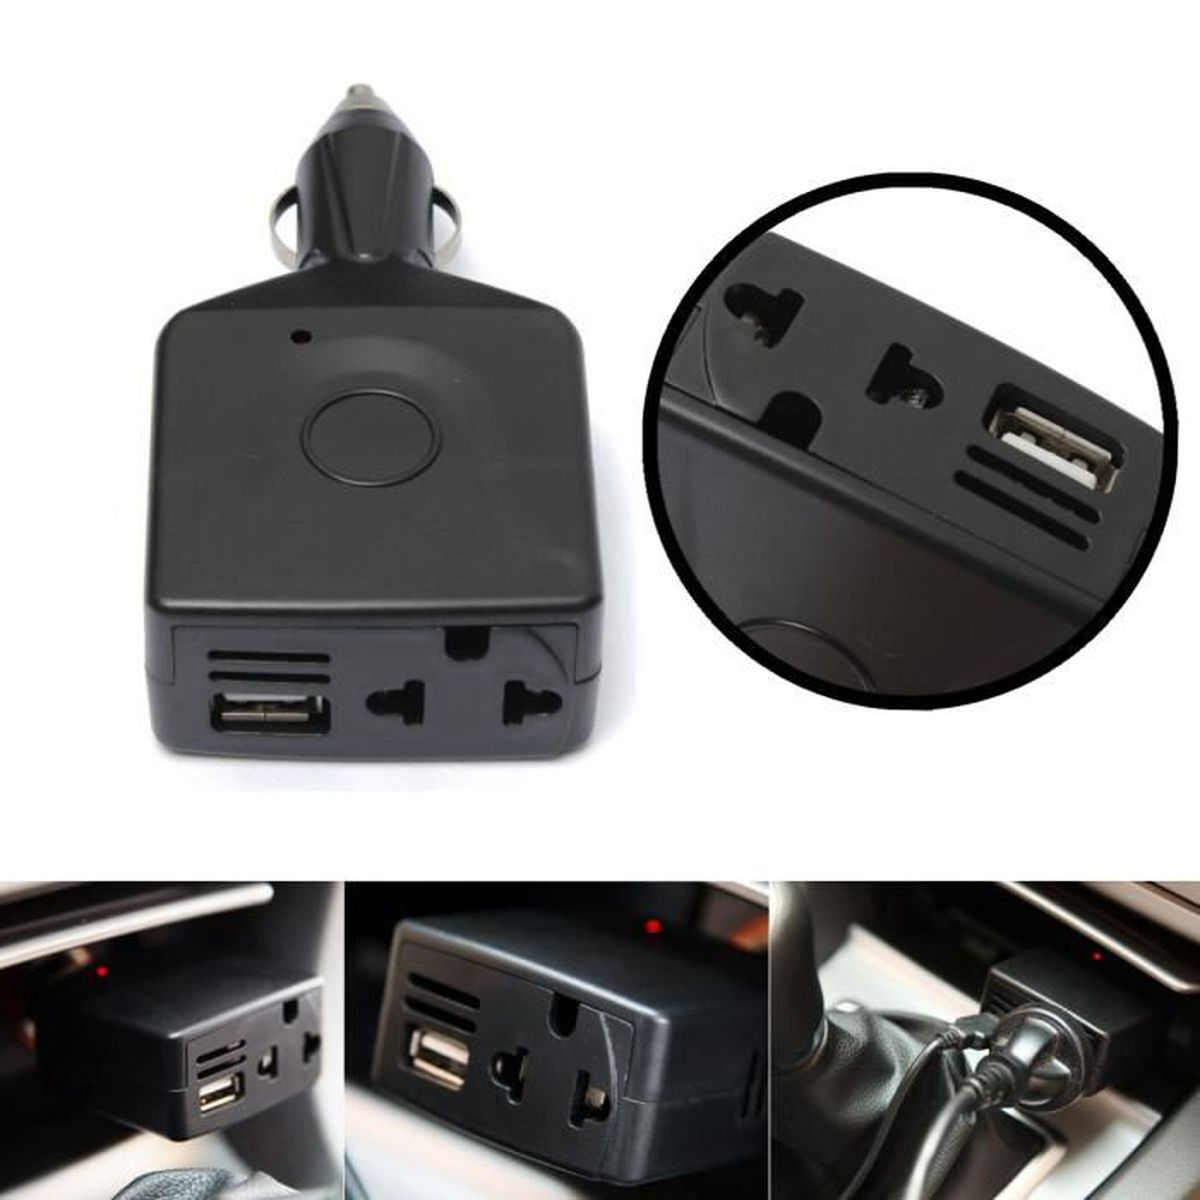 adaptateur prise usb allume cigare chargeur convertisseur 12v dc vers ac voiture achat vente. Black Bedroom Furniture Sets. Home Design Ideas